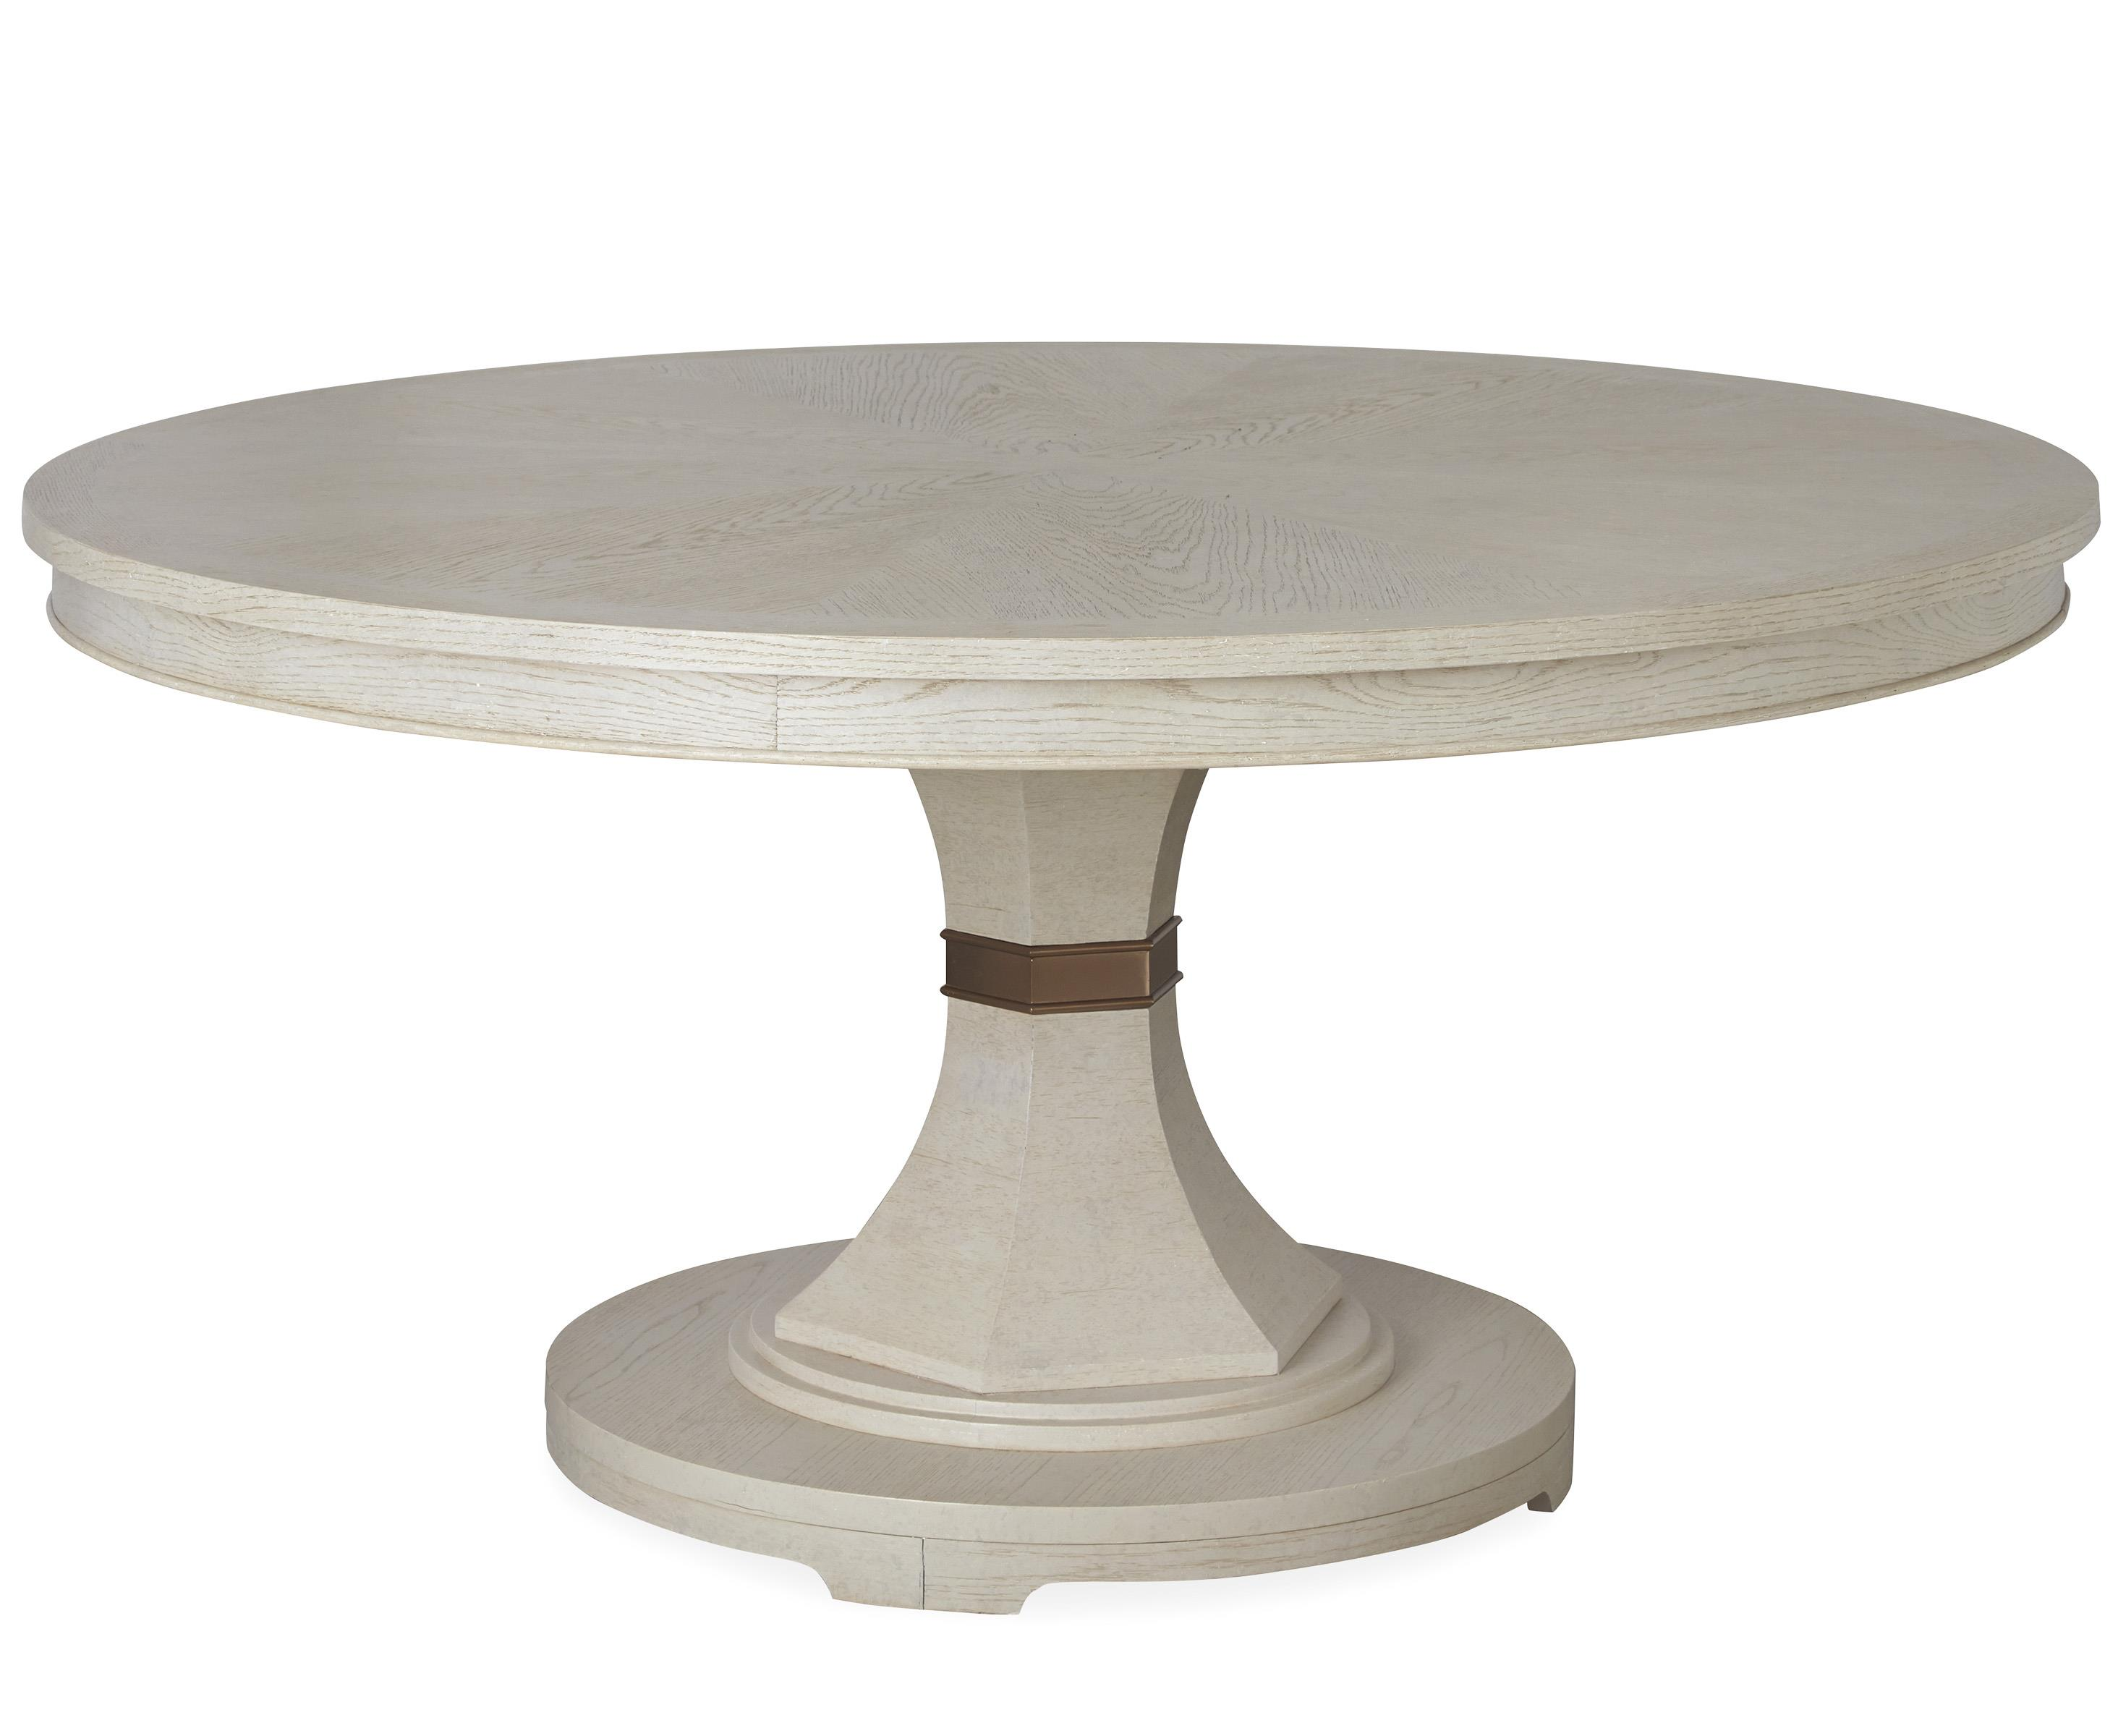 Universal California - Malibu Round Dining Table - Item Number: 476657